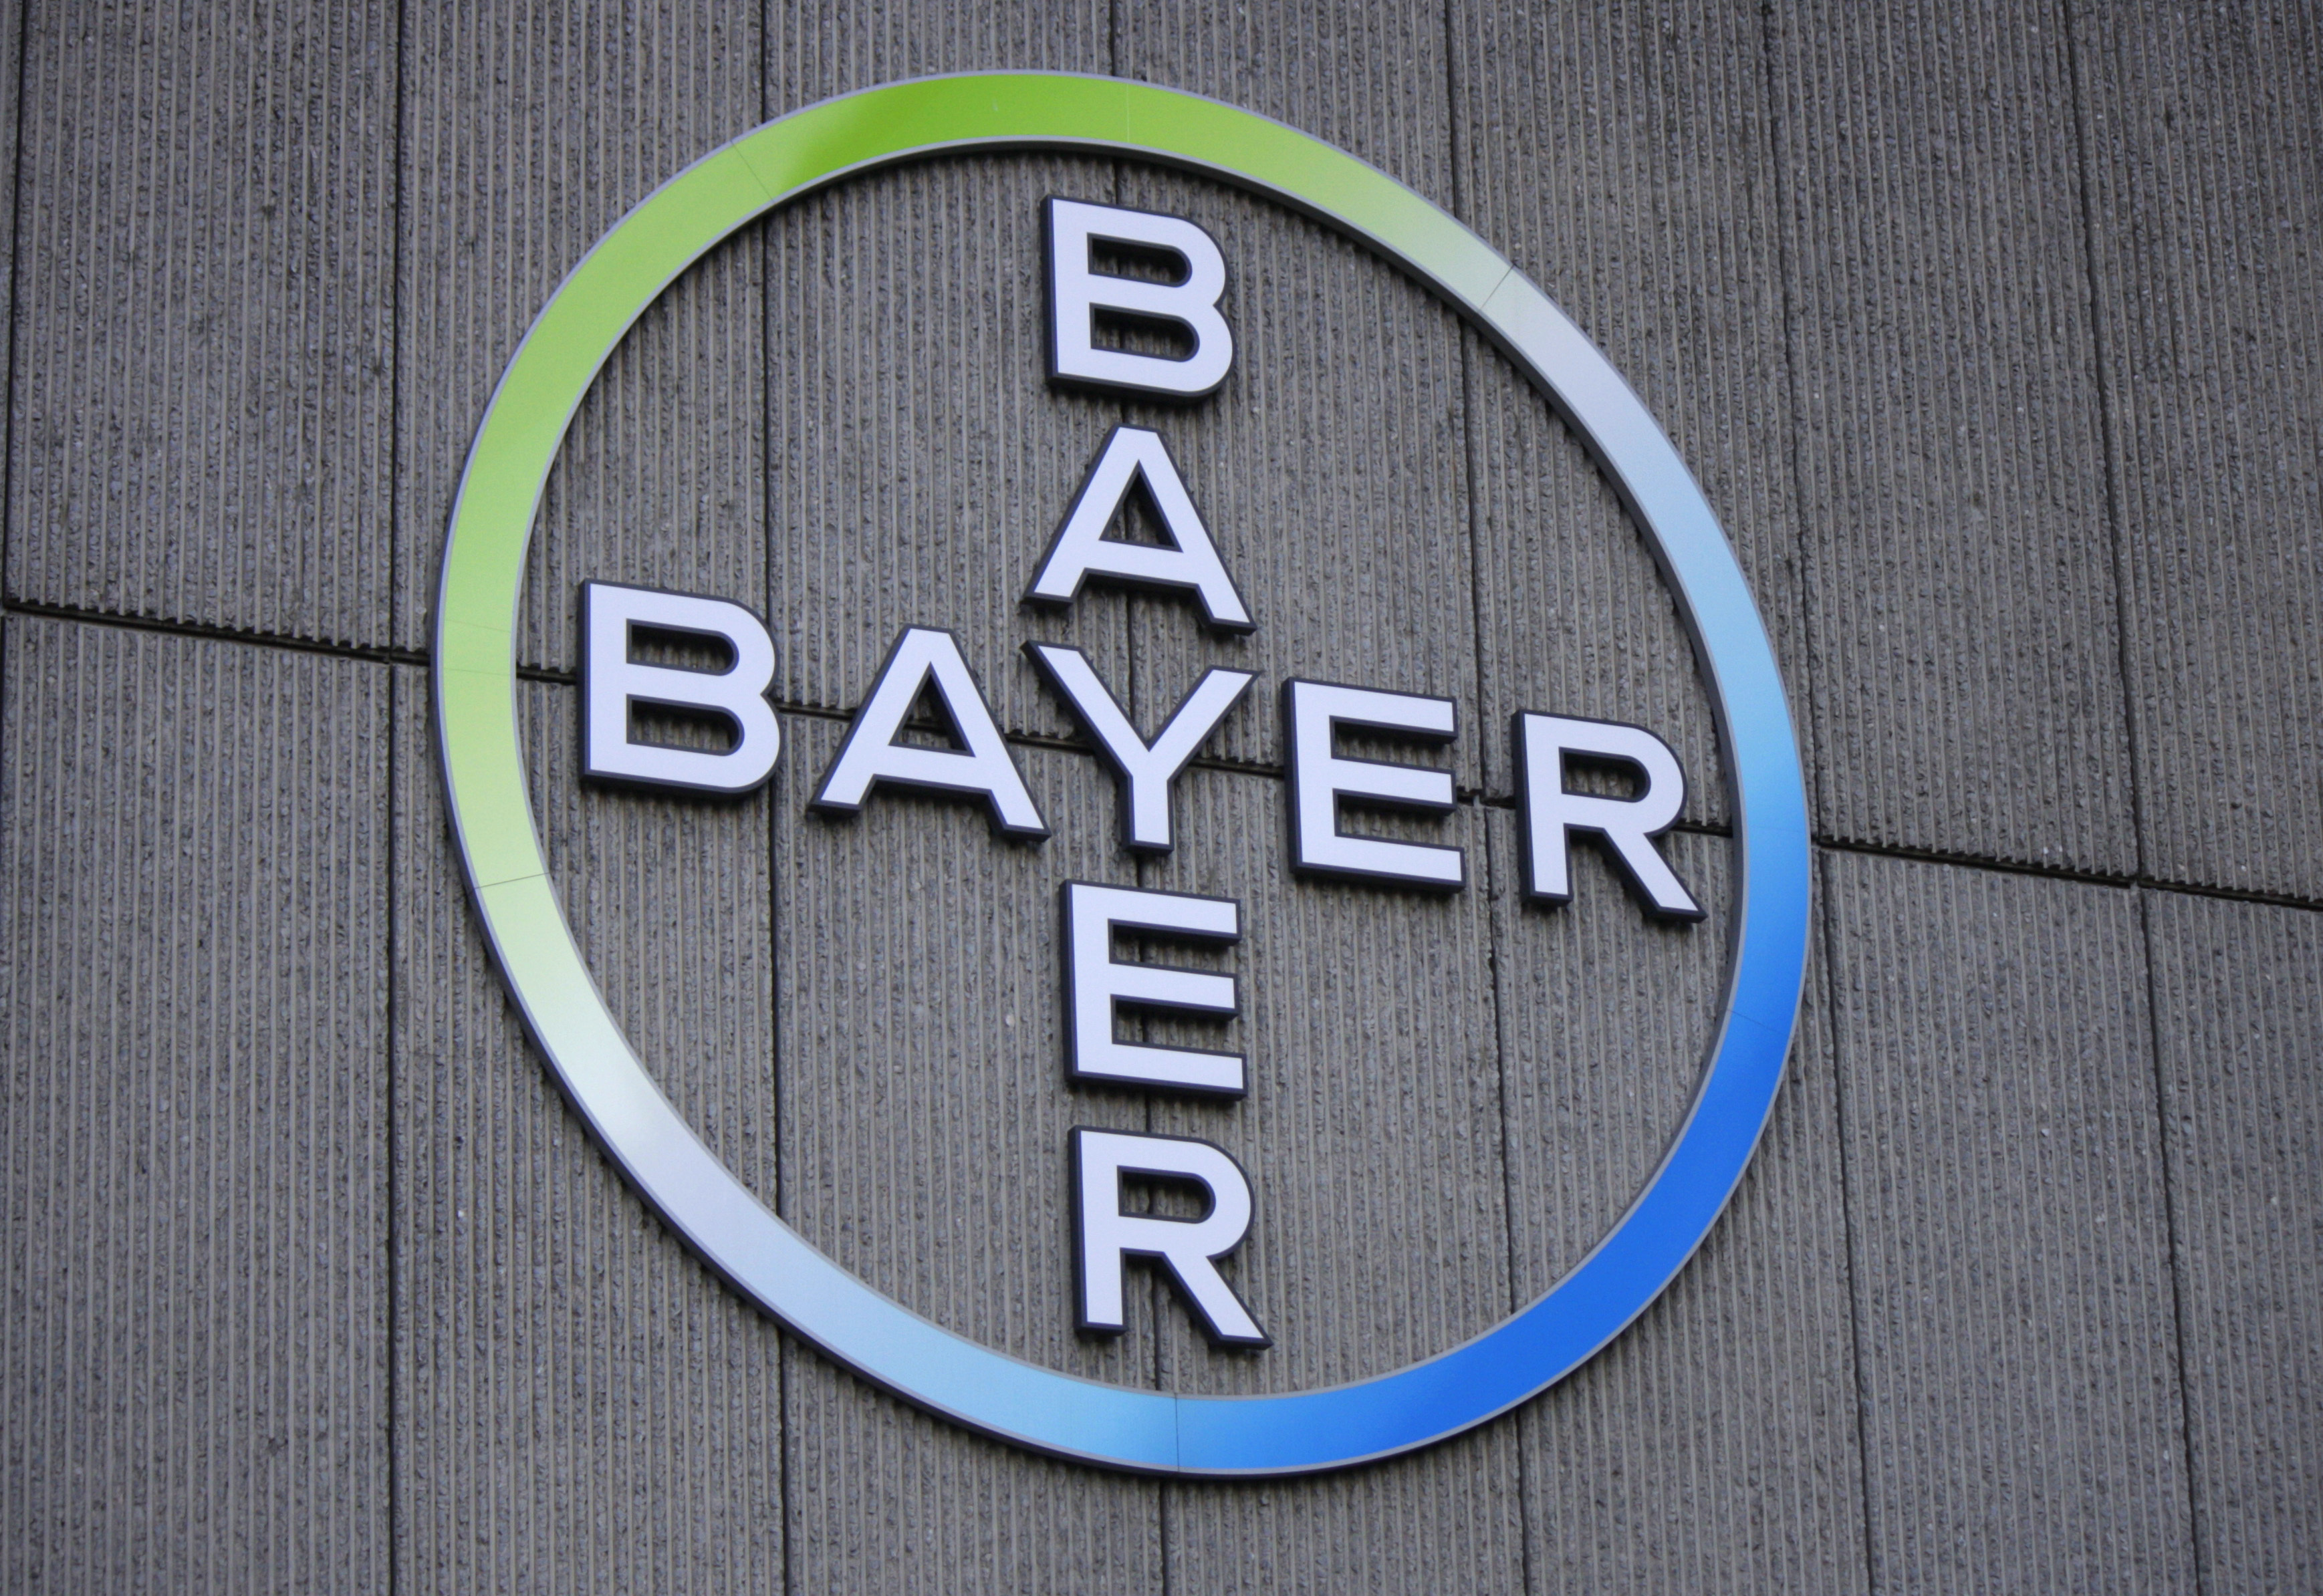 Bayer Presents New Research on Pulmonary Arterial Hypertension and Chronic Thromboembolic Pulmonary Hypertension at 2015 ATS Annual Conference